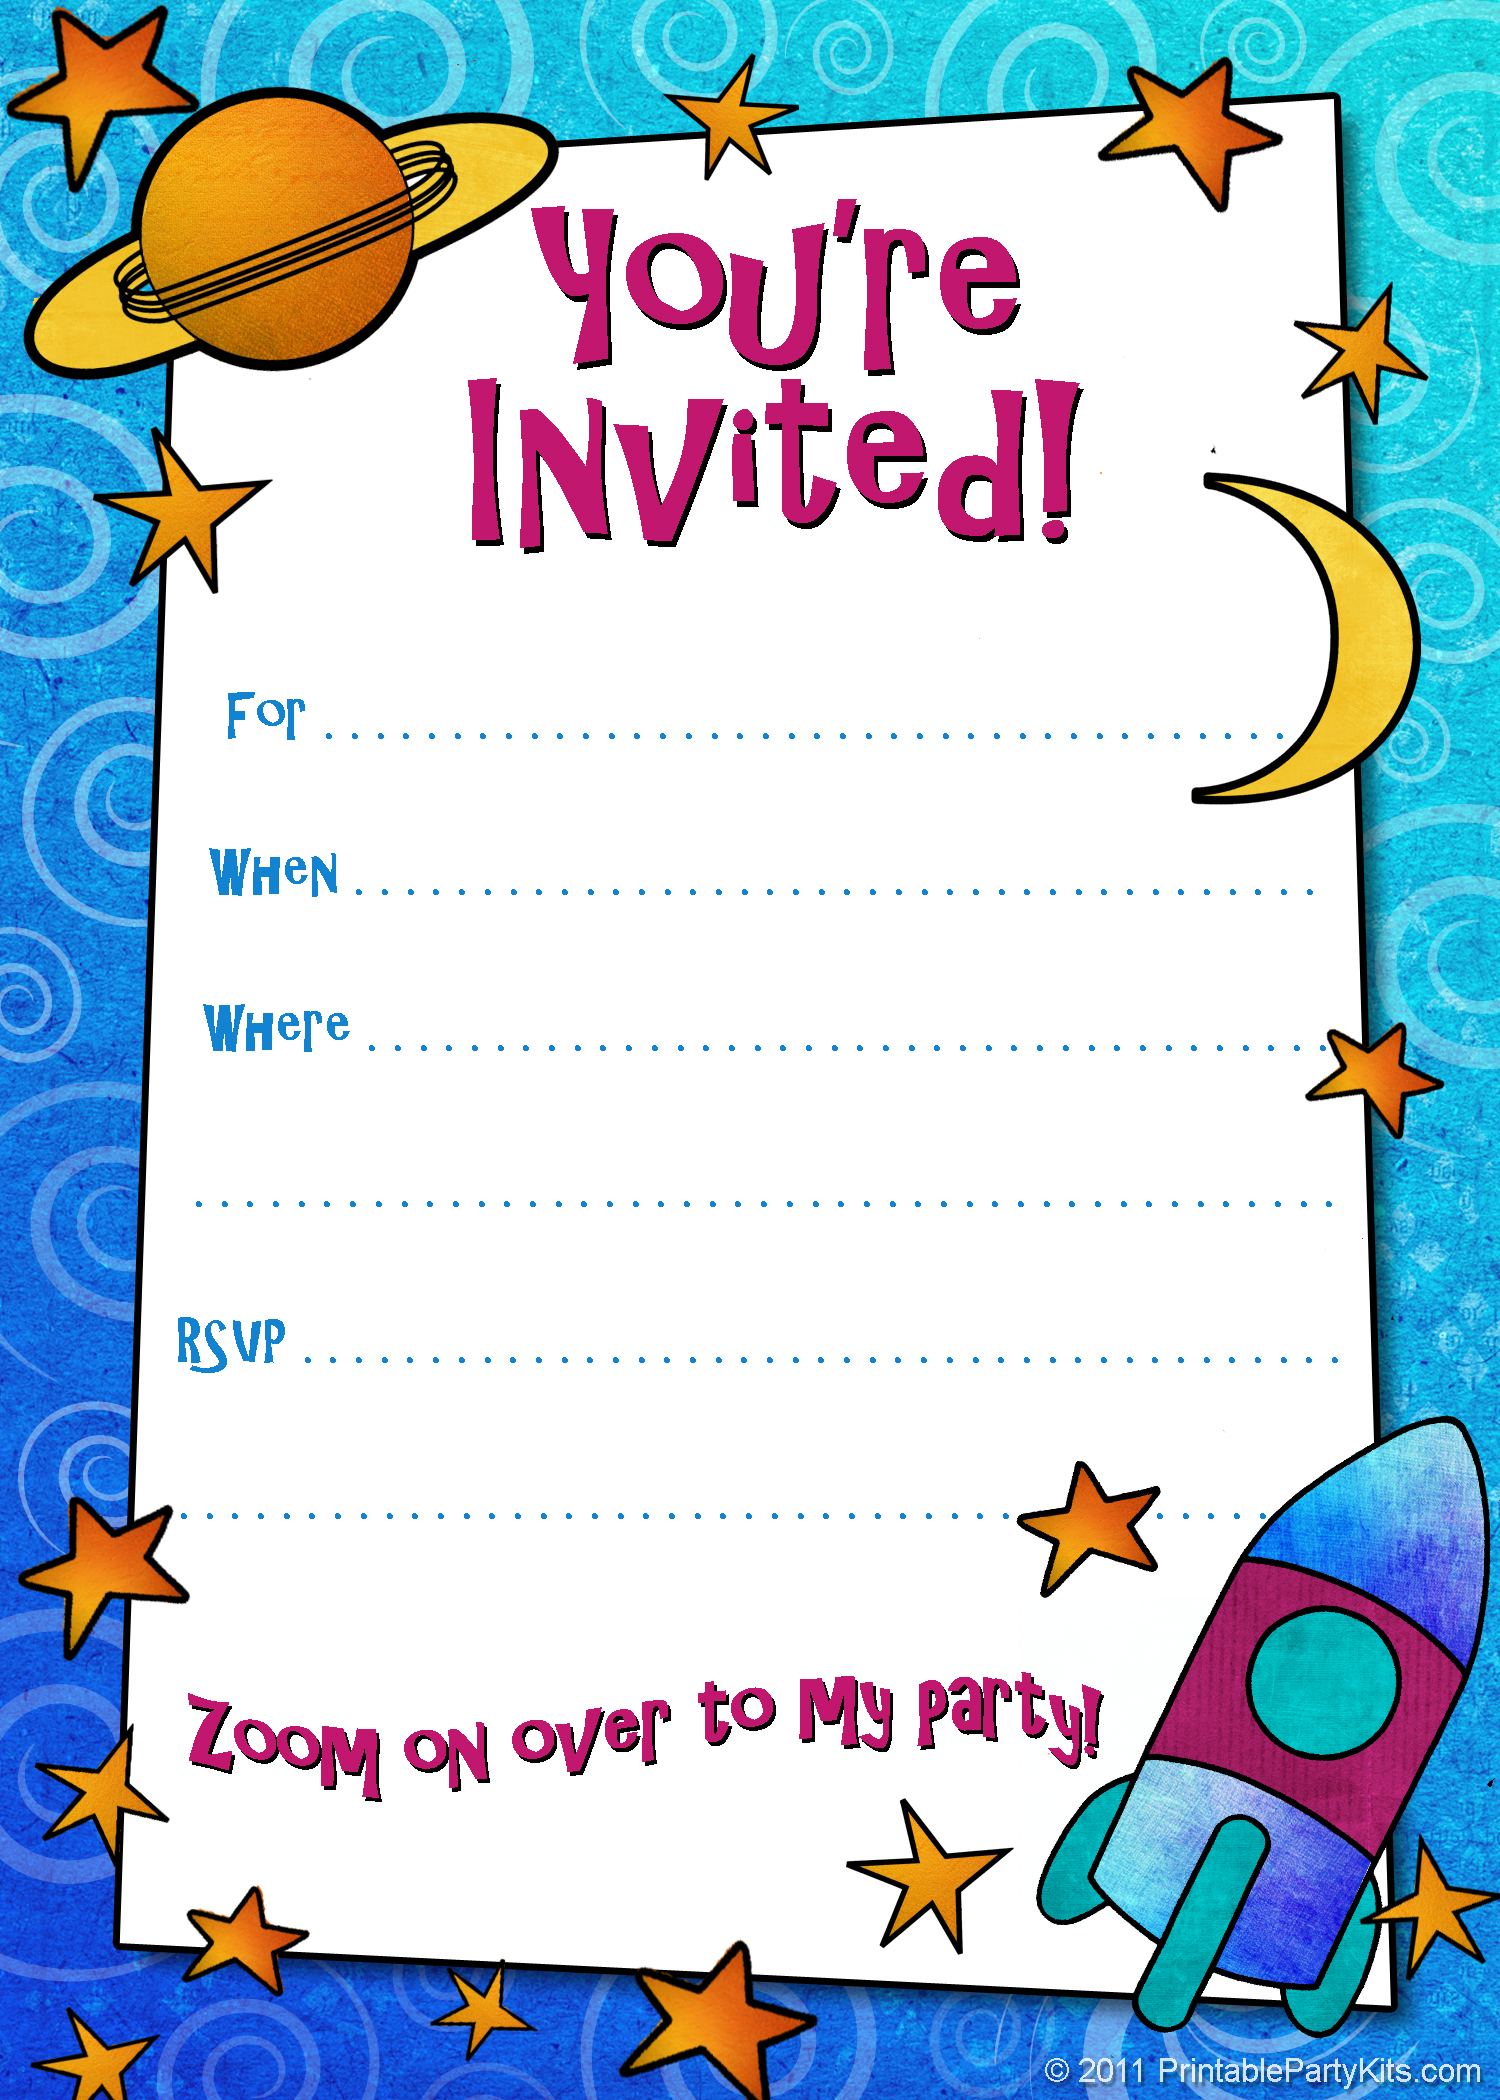 10 year old boy birthday invitations ; f26d38df07f5abe2585469543af7c6a9